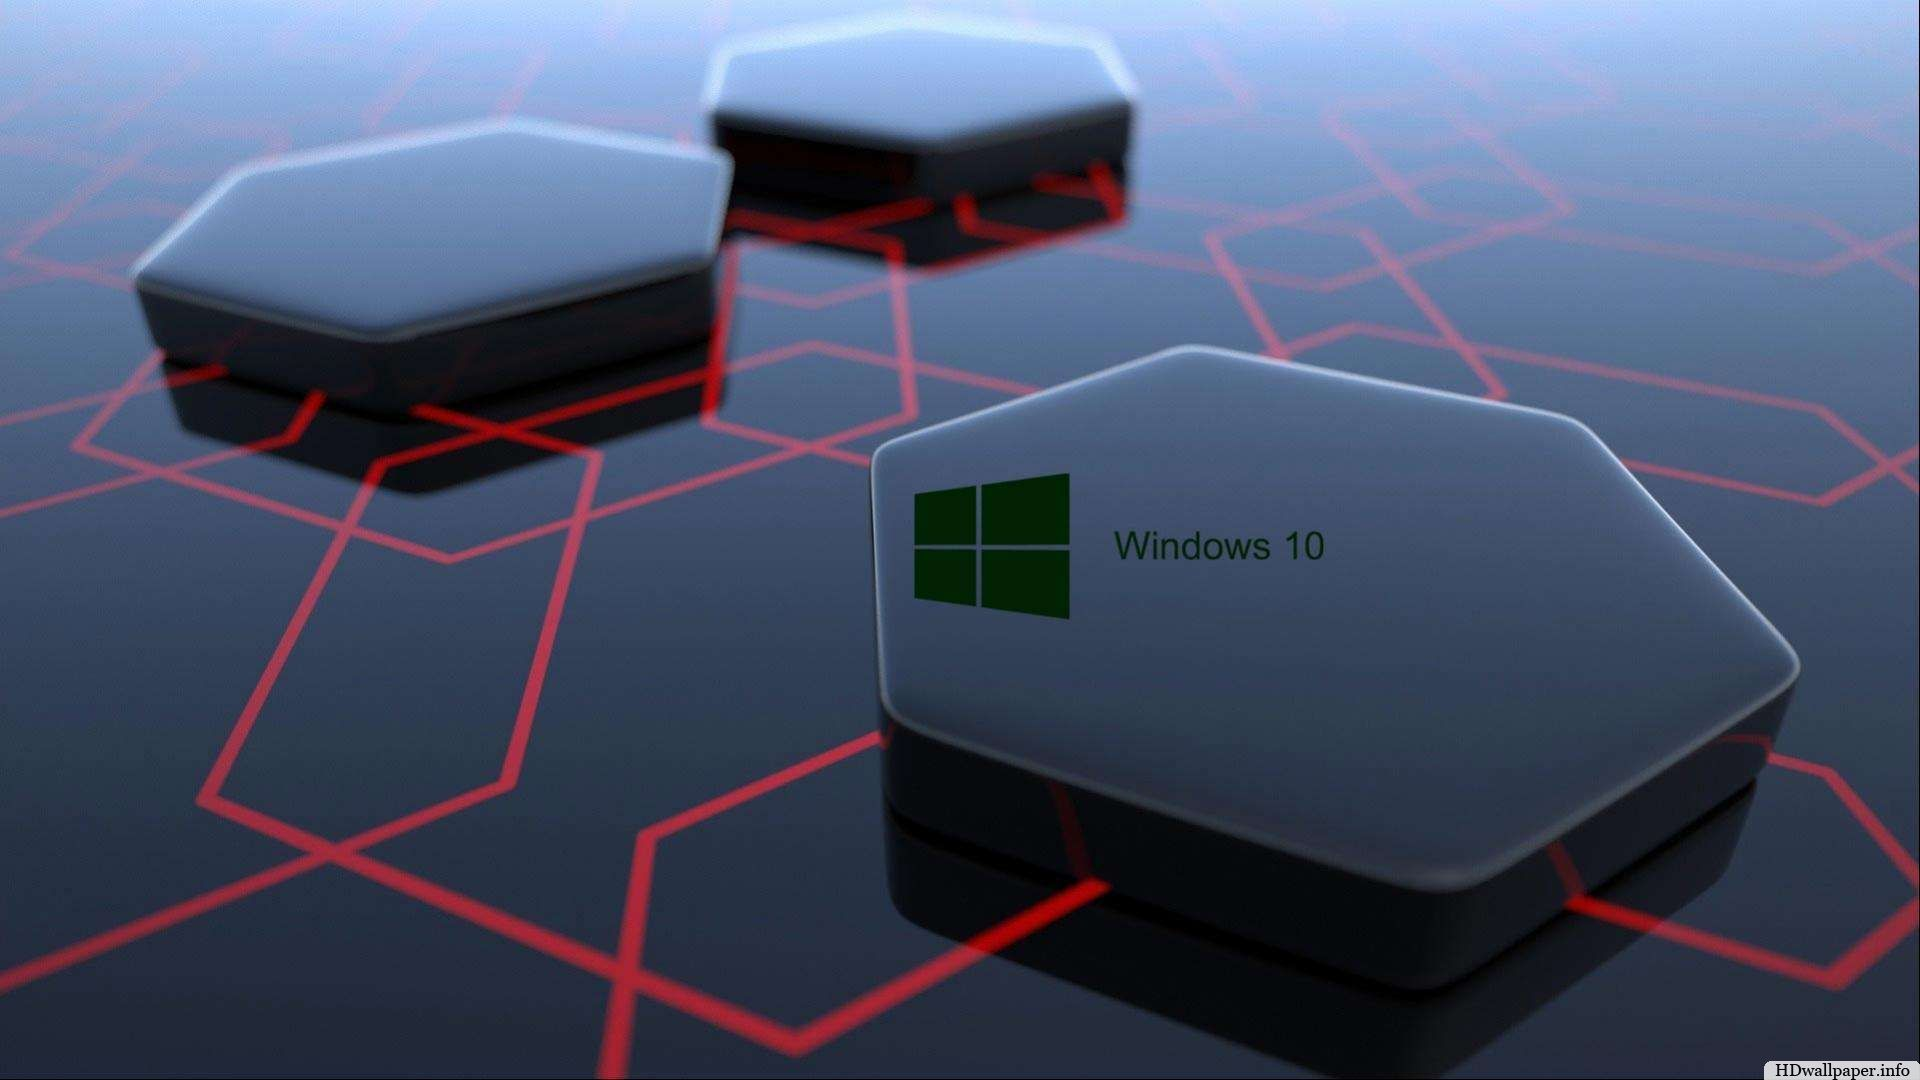 windows 10 wallpaper - http://hdwallpaper/windows-10-wallpaper